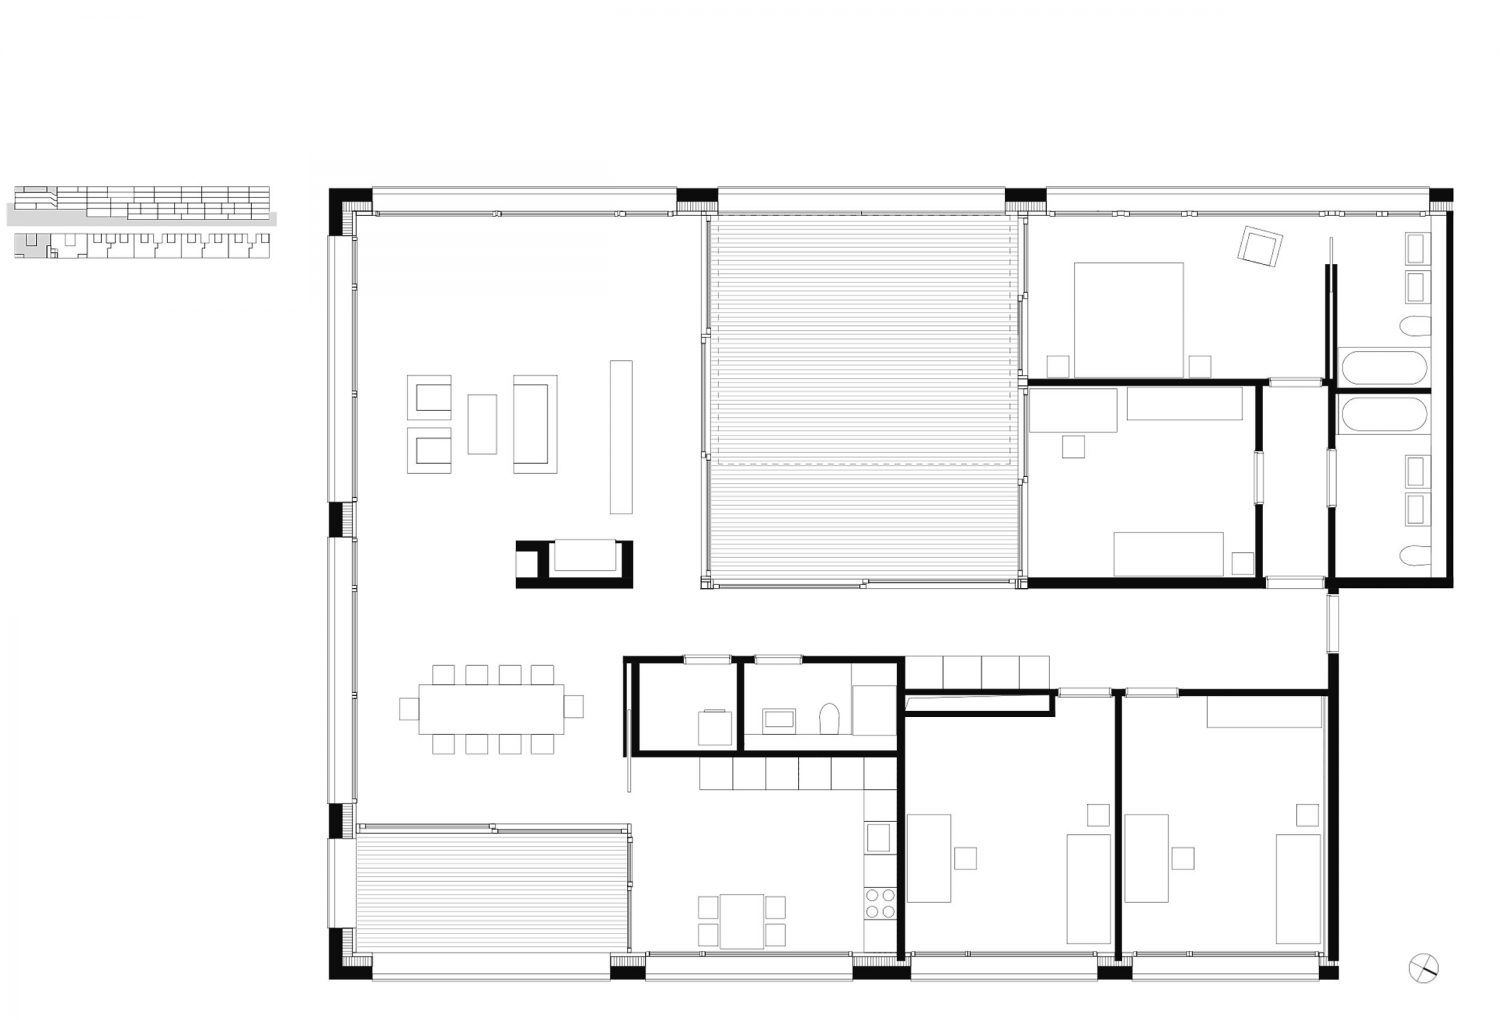 5.5 room apartment with patio – 3rd floor